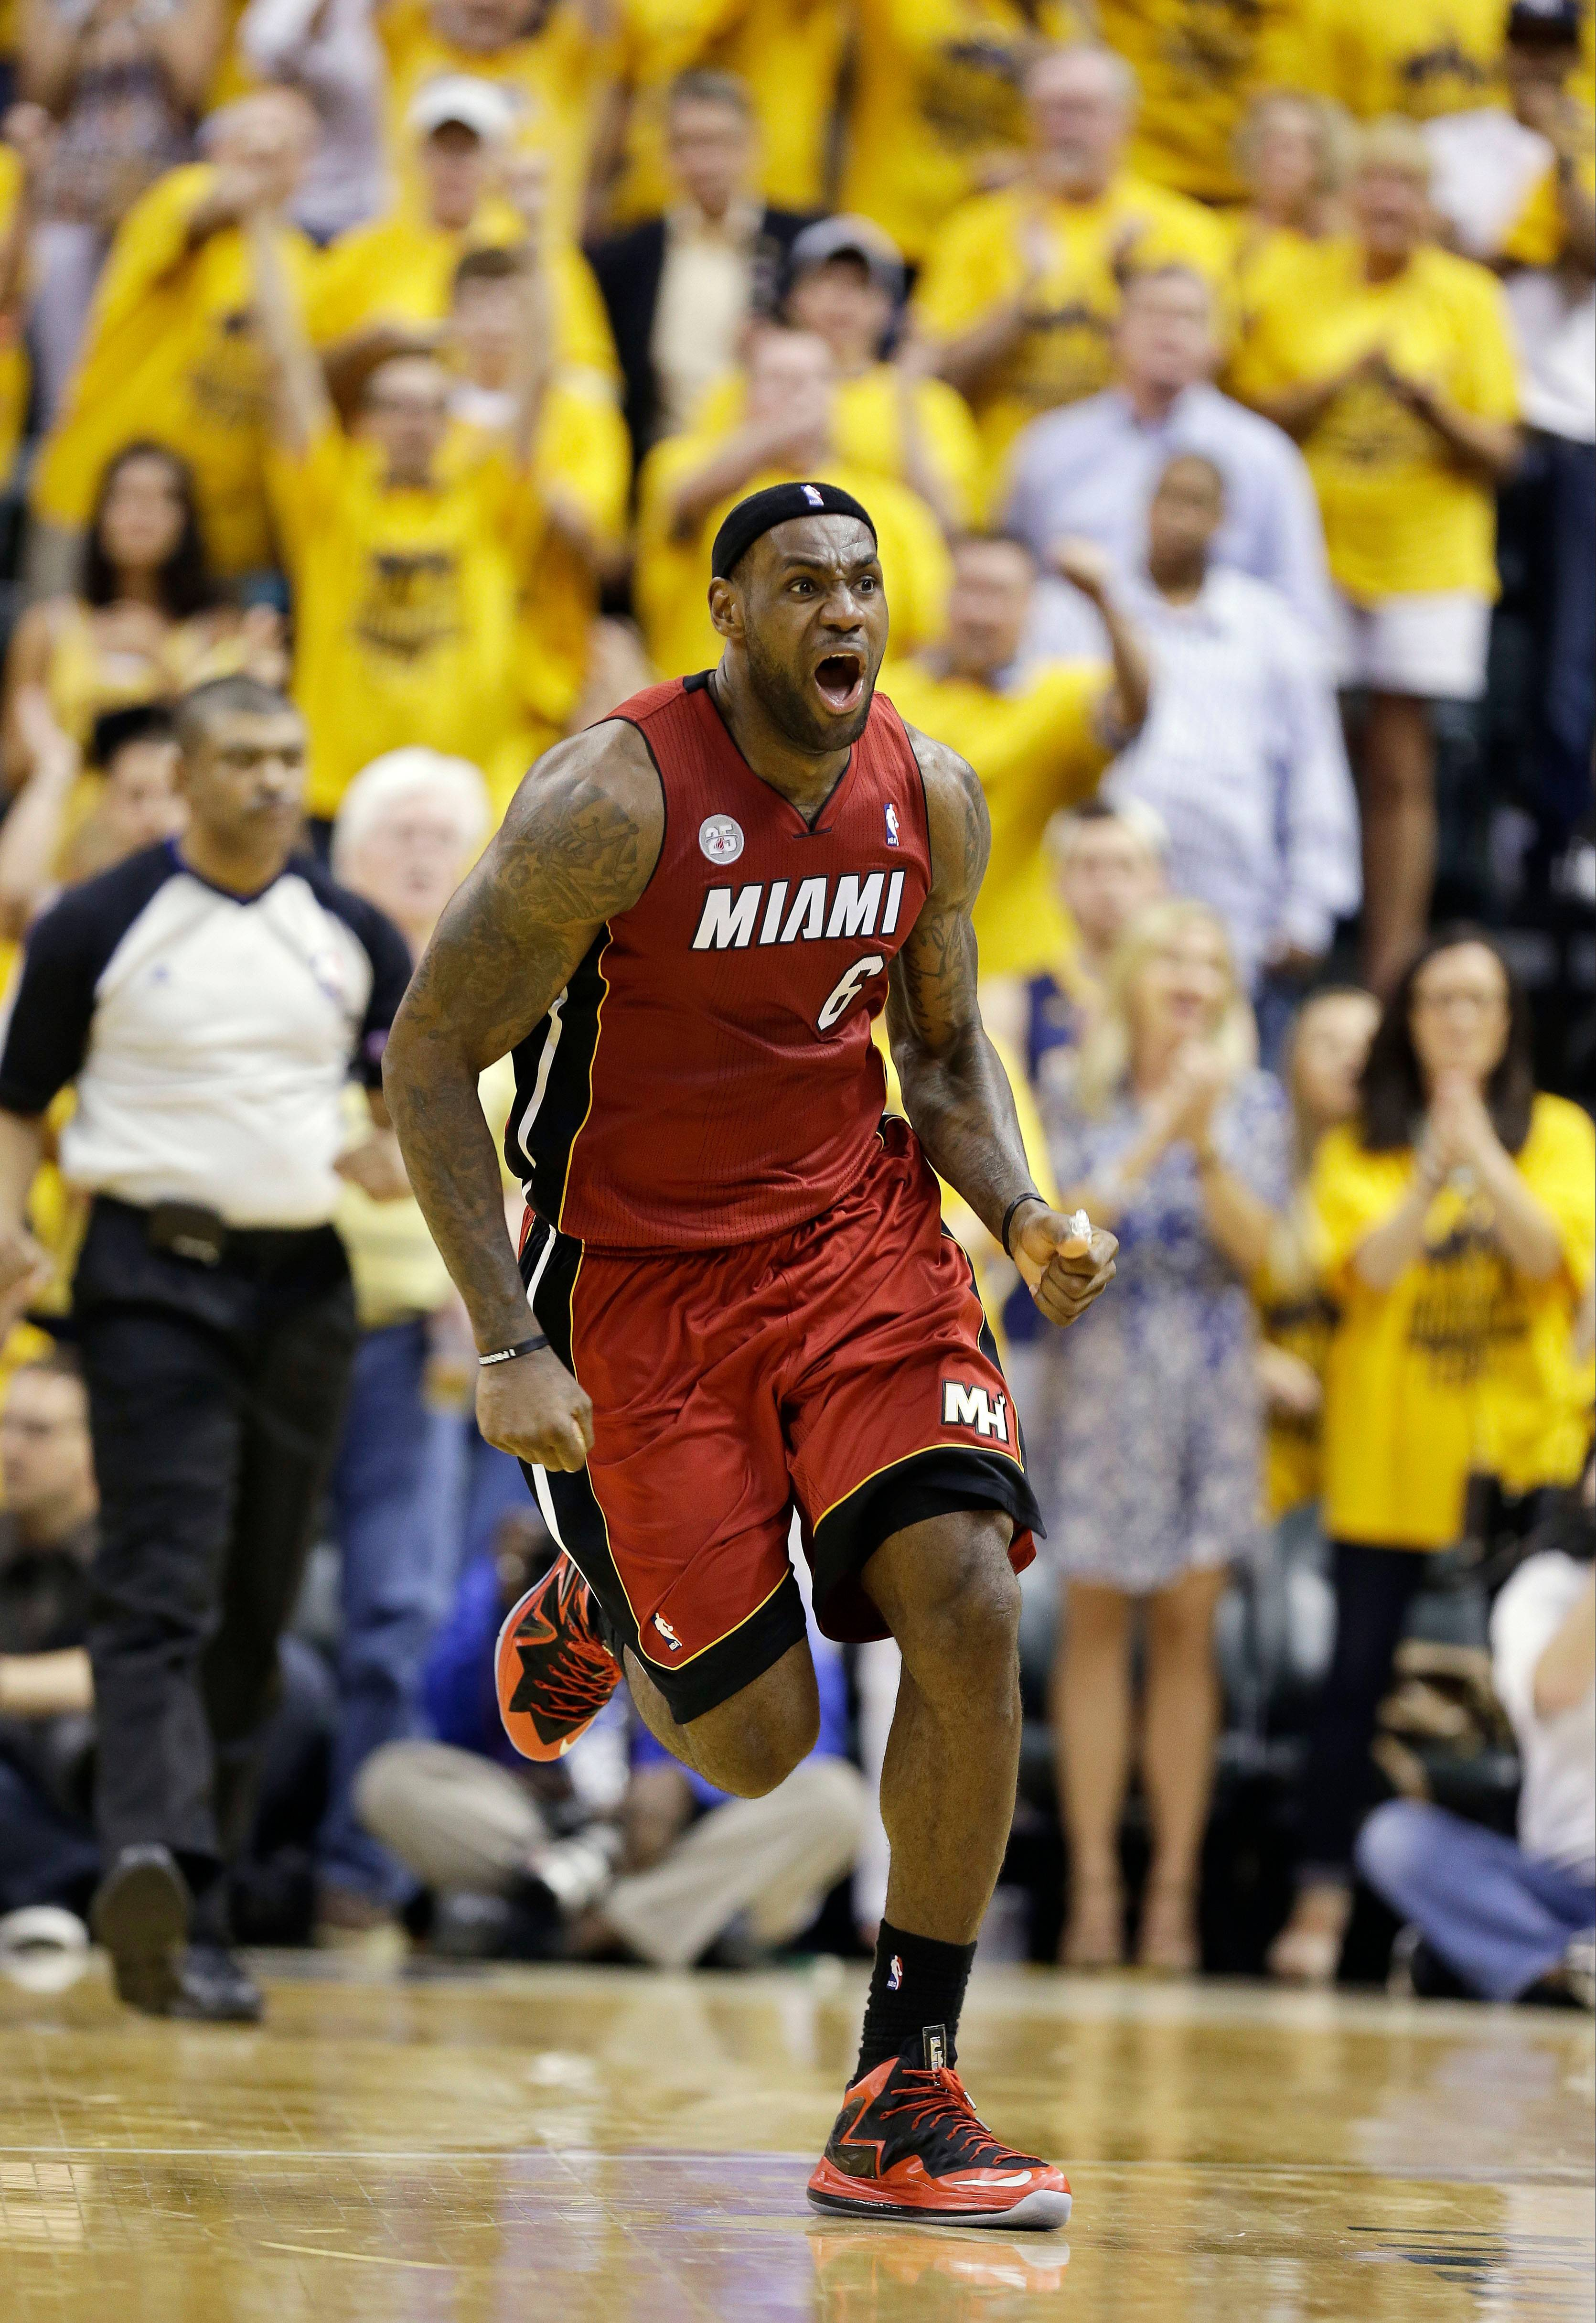 Miami Heat forward LeBron James reacts after being called for a technical foul while shooting against the Indiana Pacers during the second half of Game 6 of the NBA Eastern Conference basketball finals in Indianapolis, Saturday, June 1, 2013.